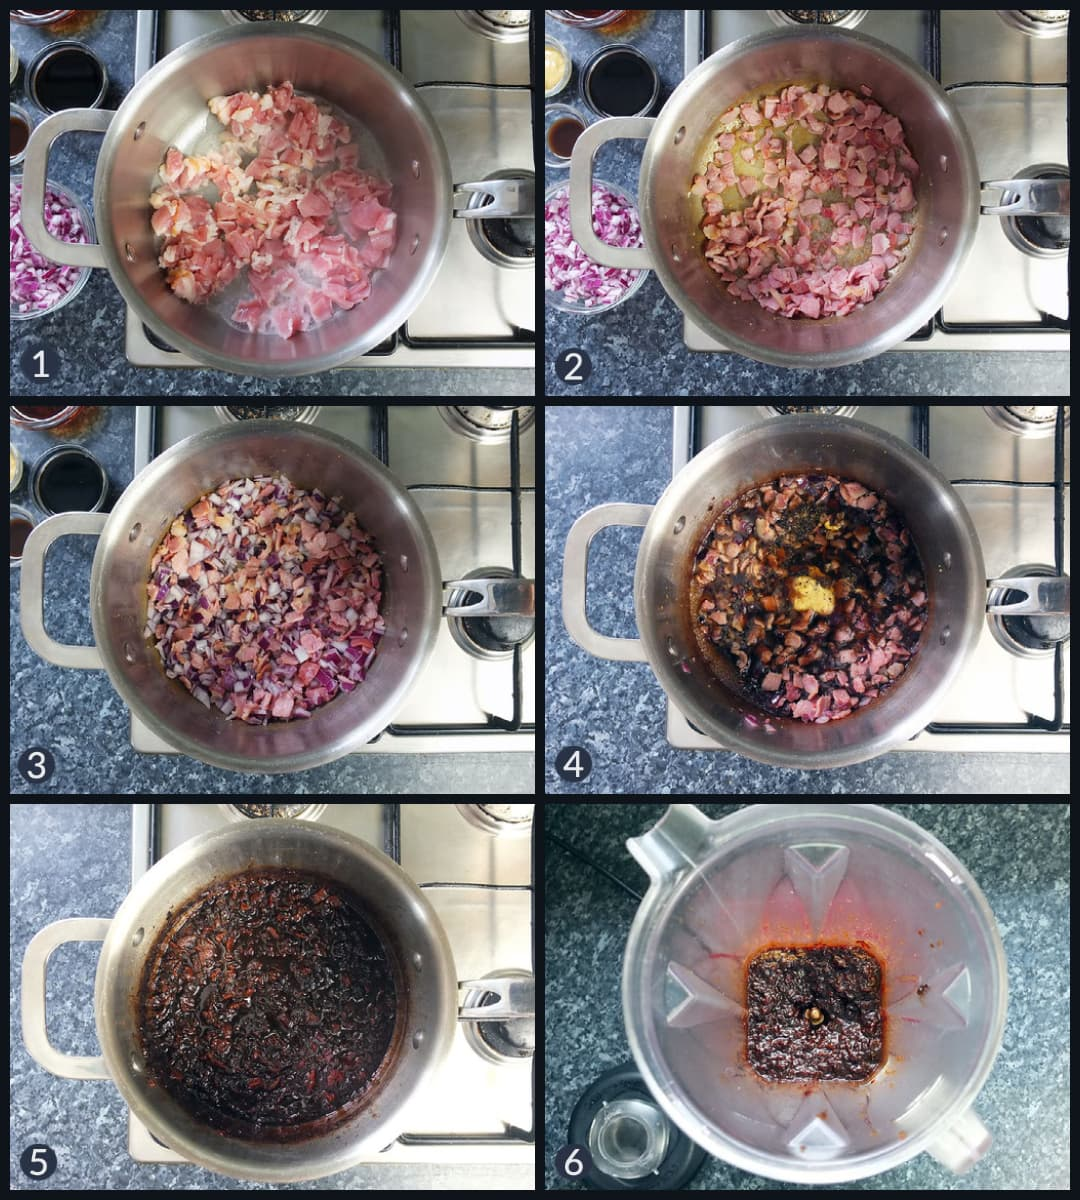 Step by step collage image how to make bacon jam from scratch.